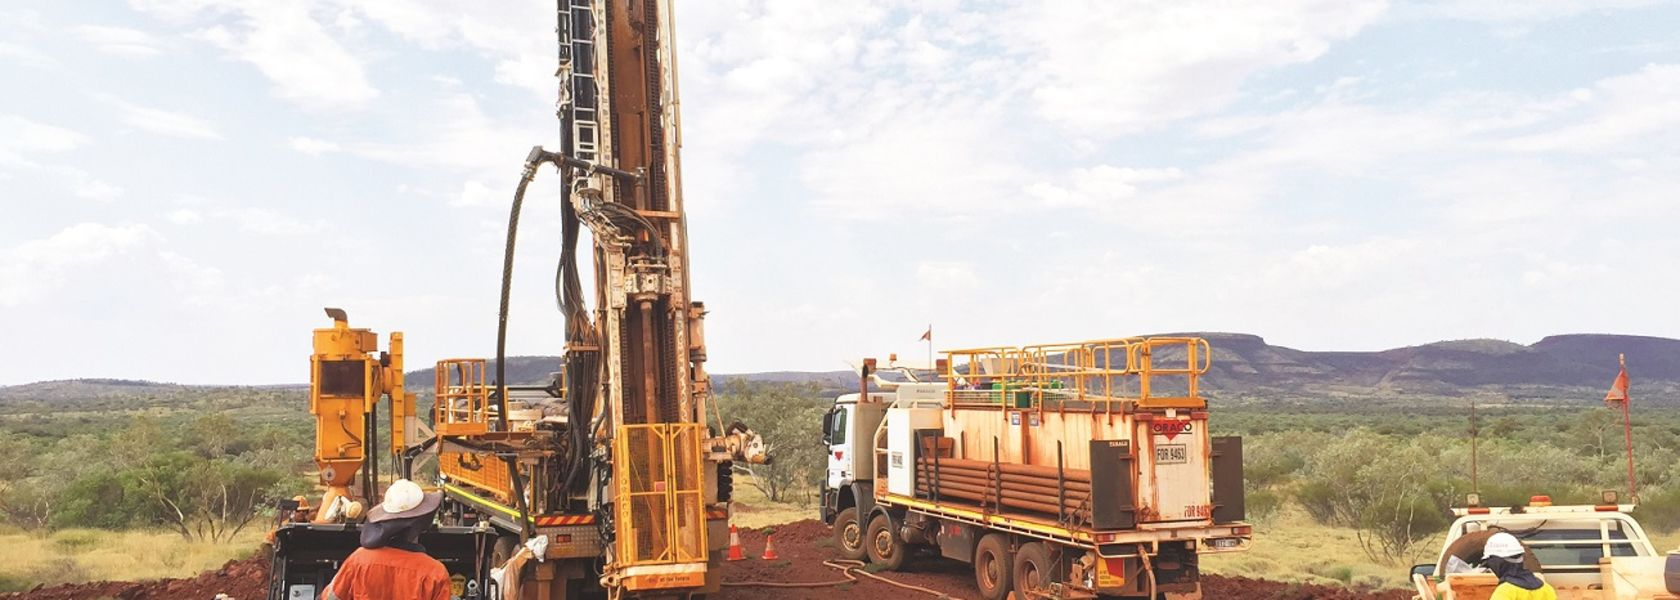 Meeting a need for drilling innovation